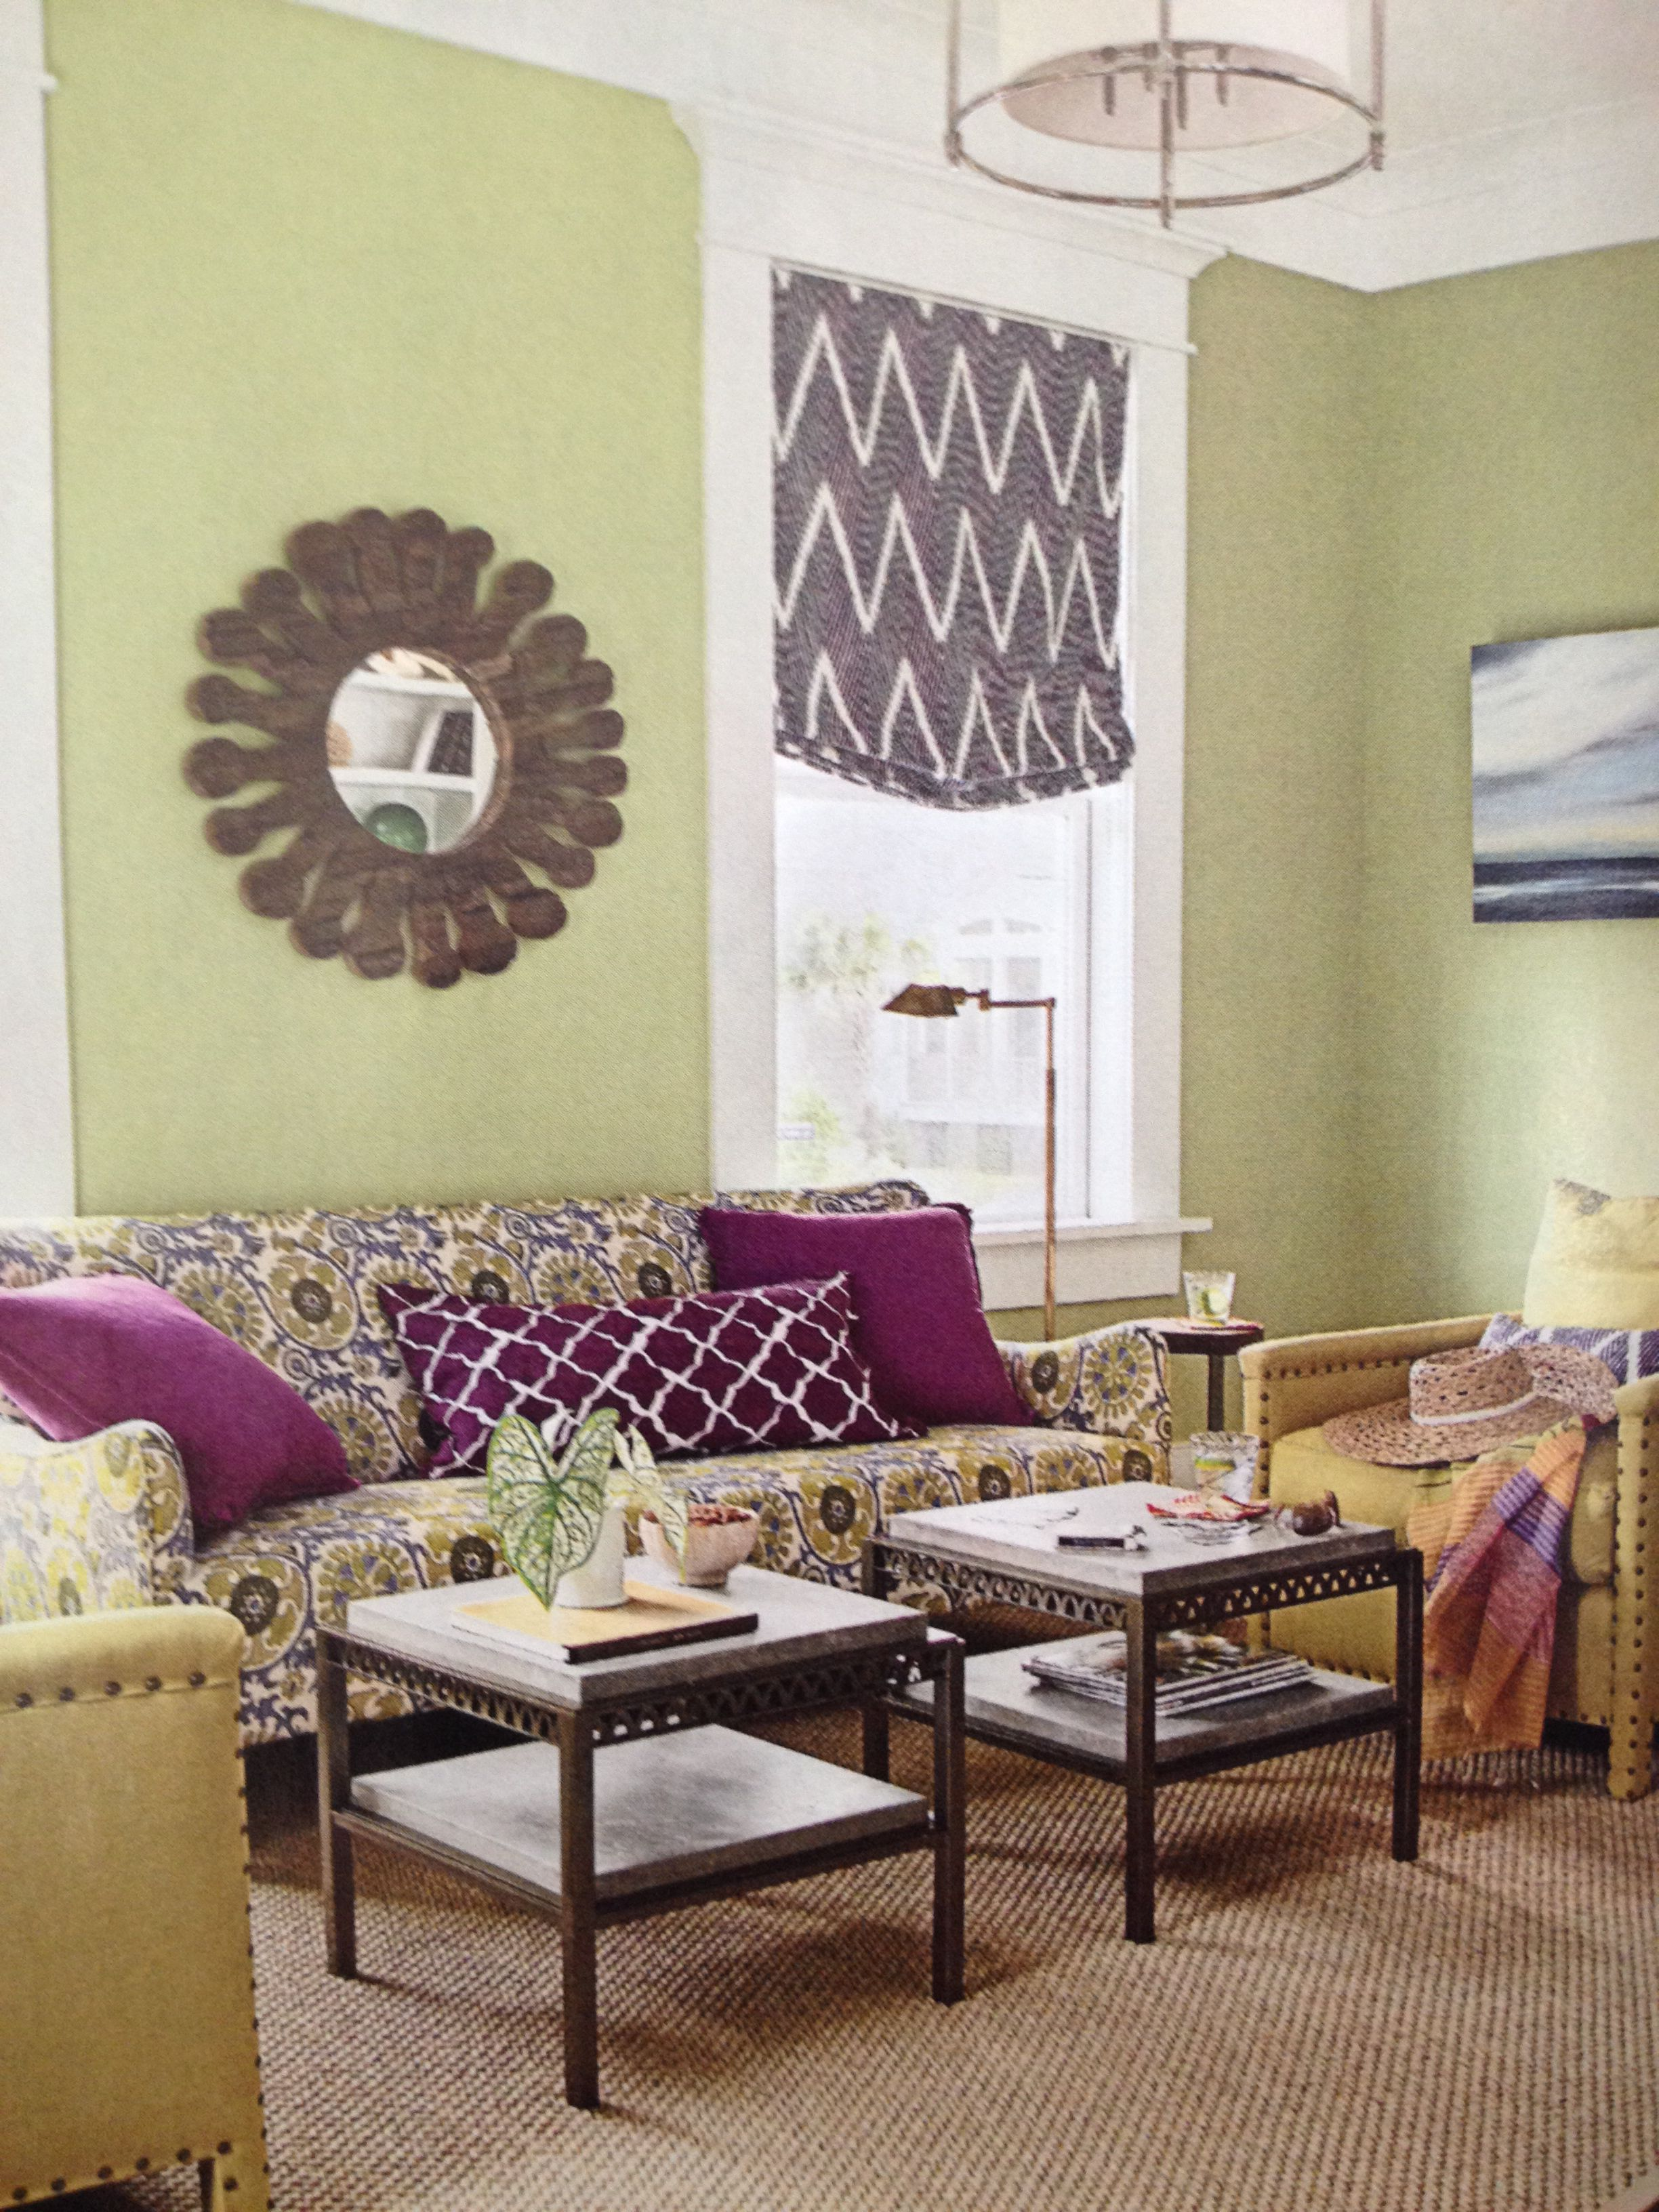 color combo sherwin williams hearts of palm on walls and eggplant rh pinterest com